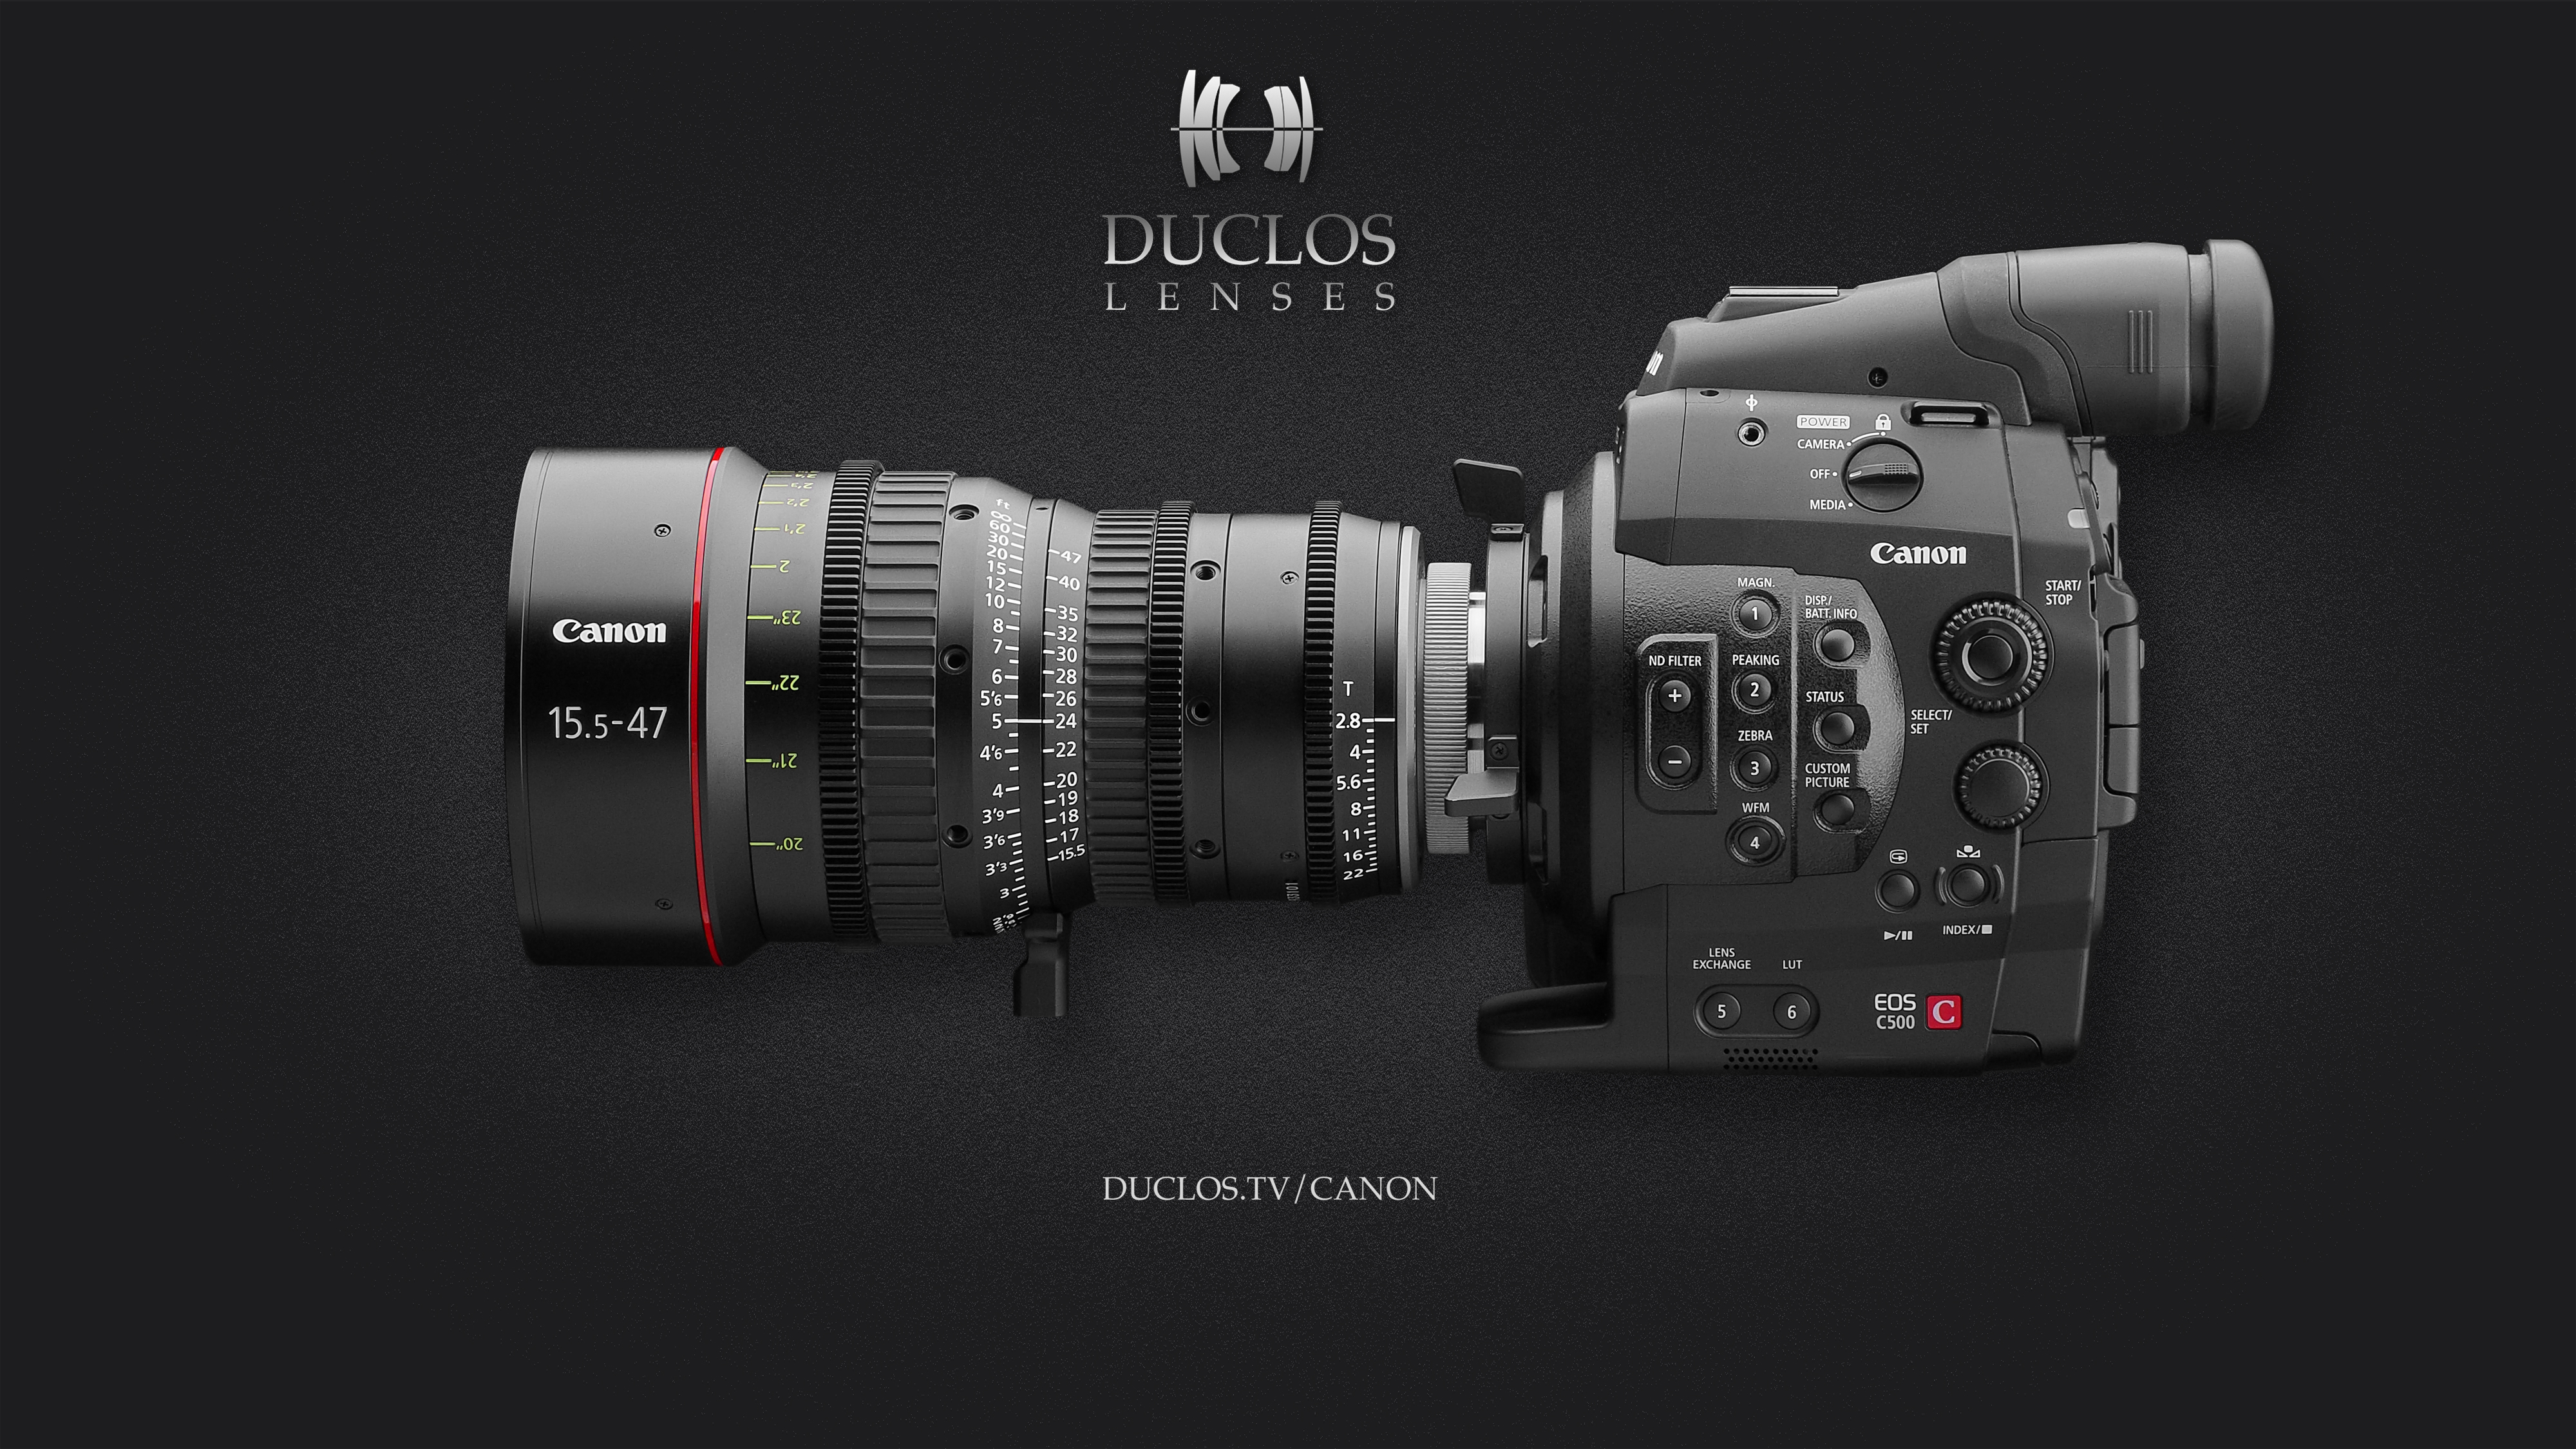 Your Awesome Canon Cine Wallpaper Compliments Of Duclos Lenses